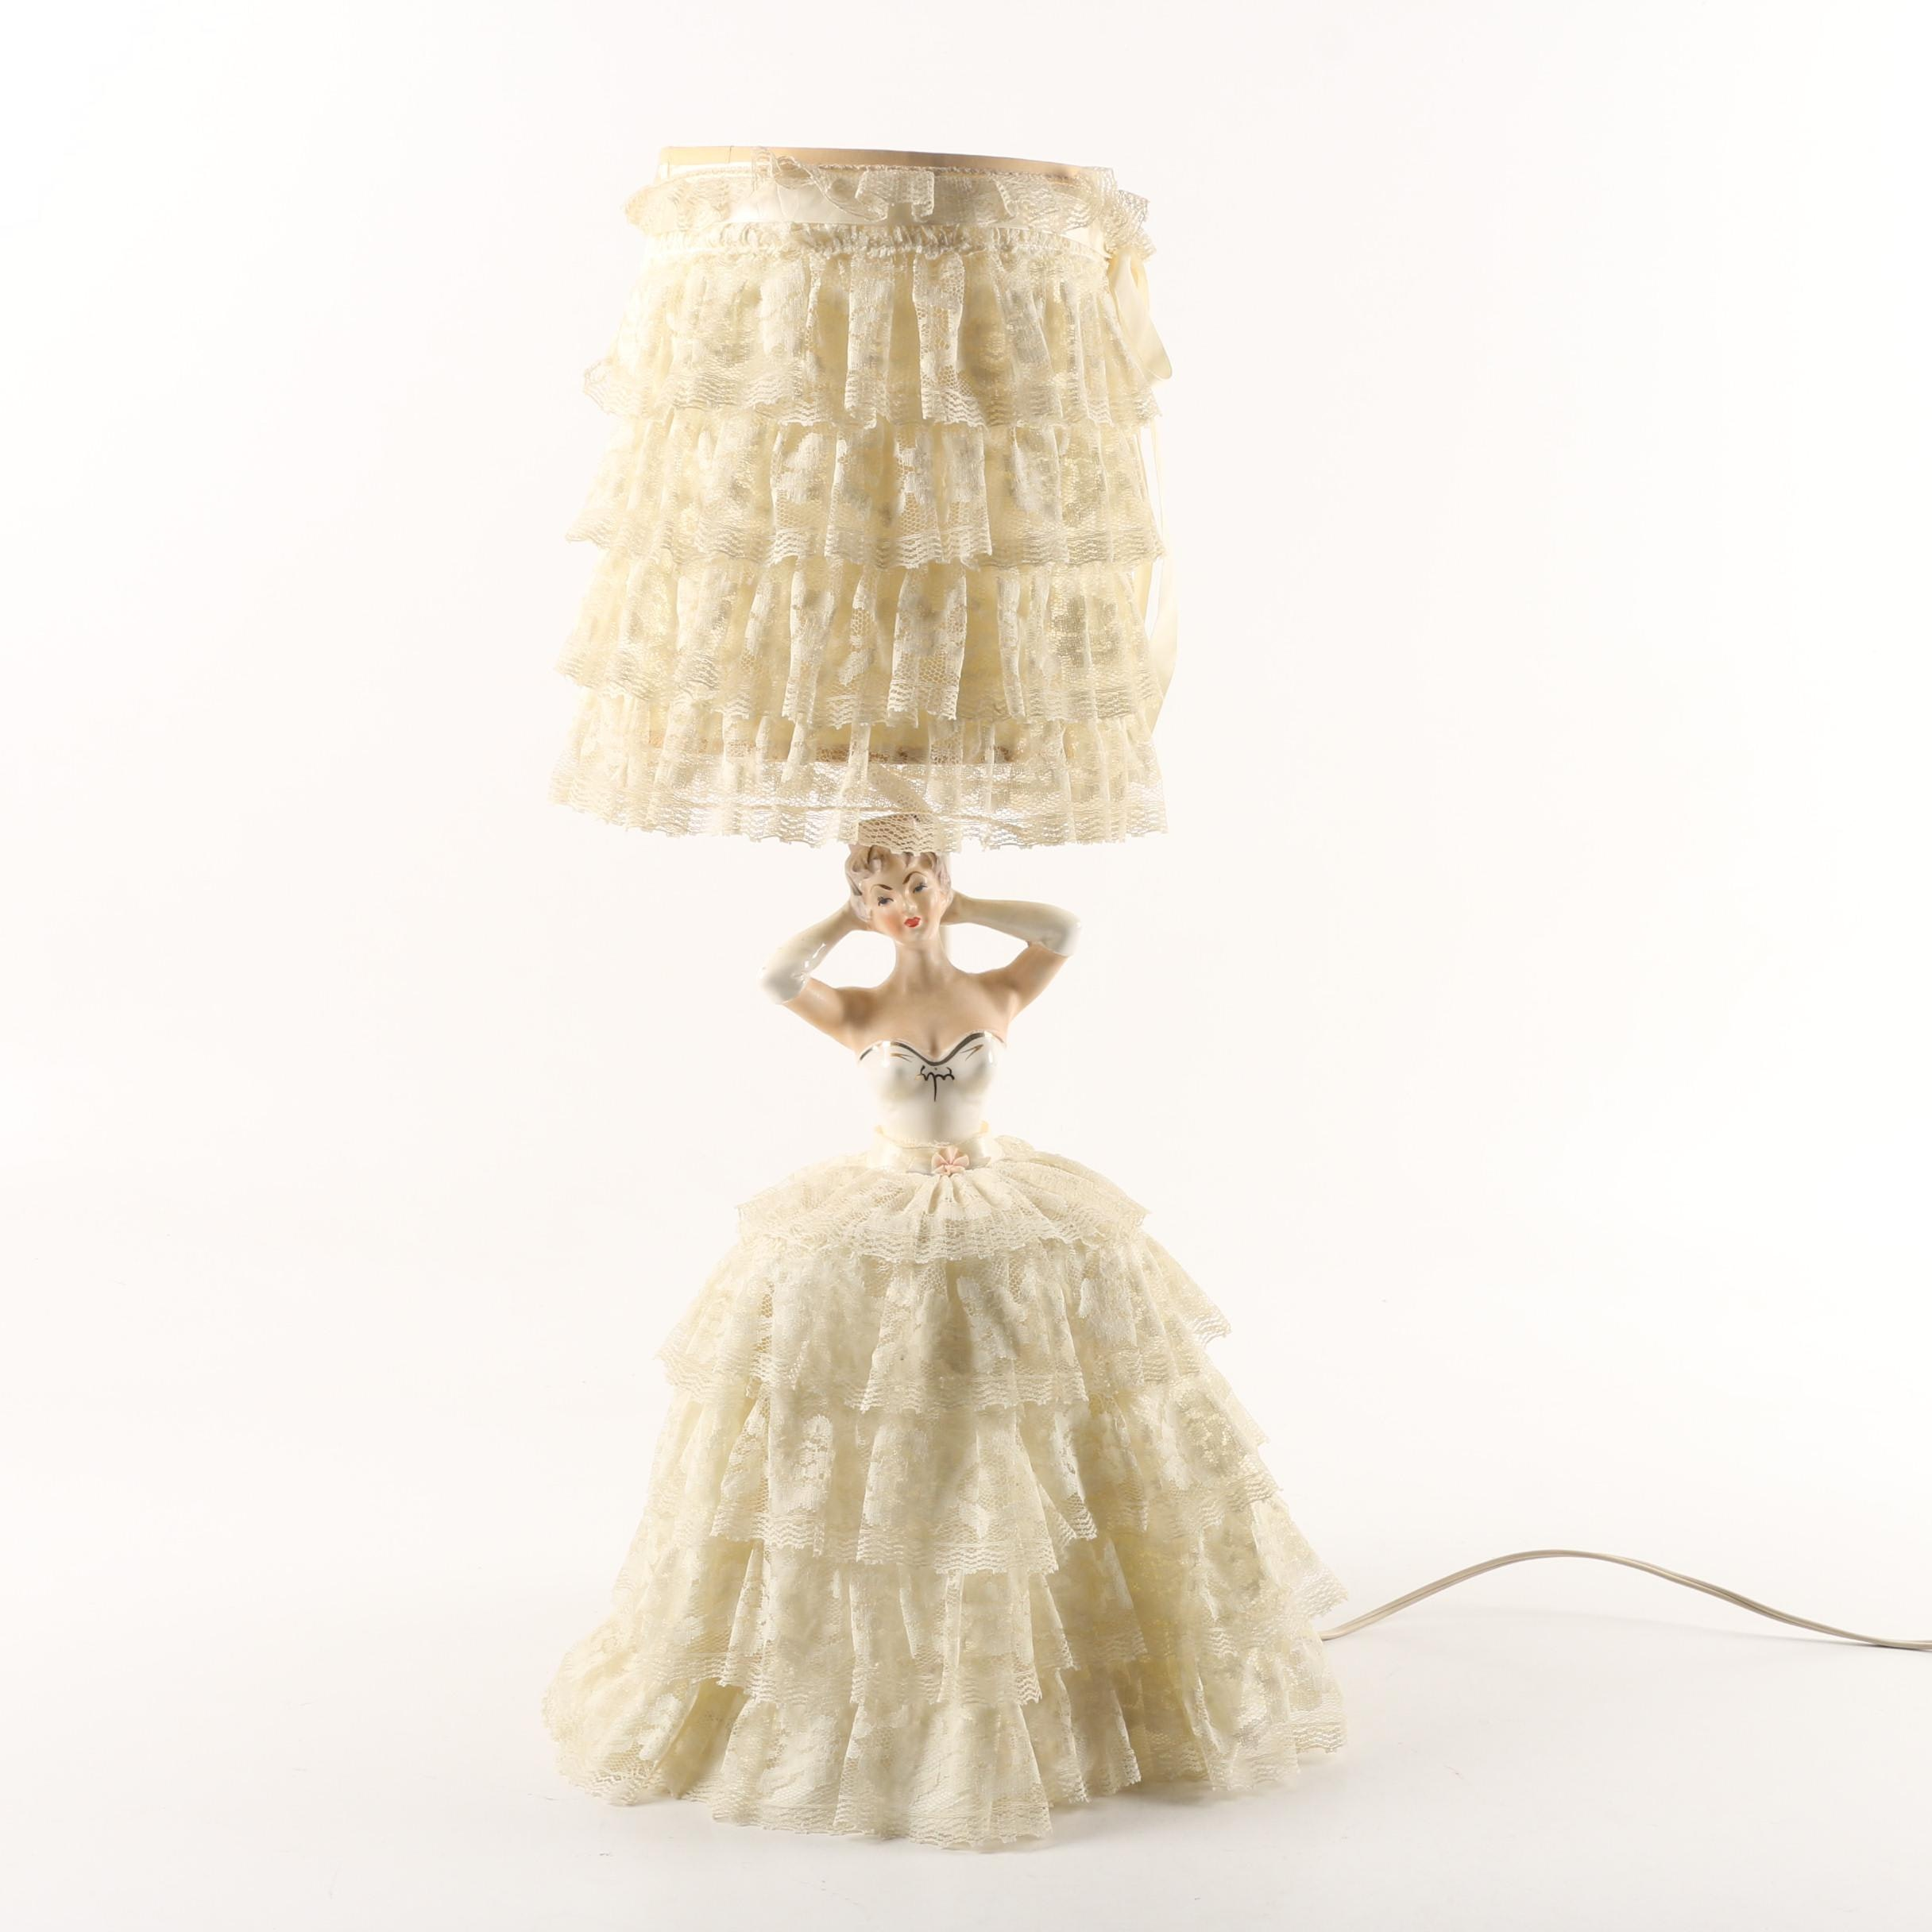 Mid Century Figural Ceramic Table Lamp with Tiered Lace Dress and Shade